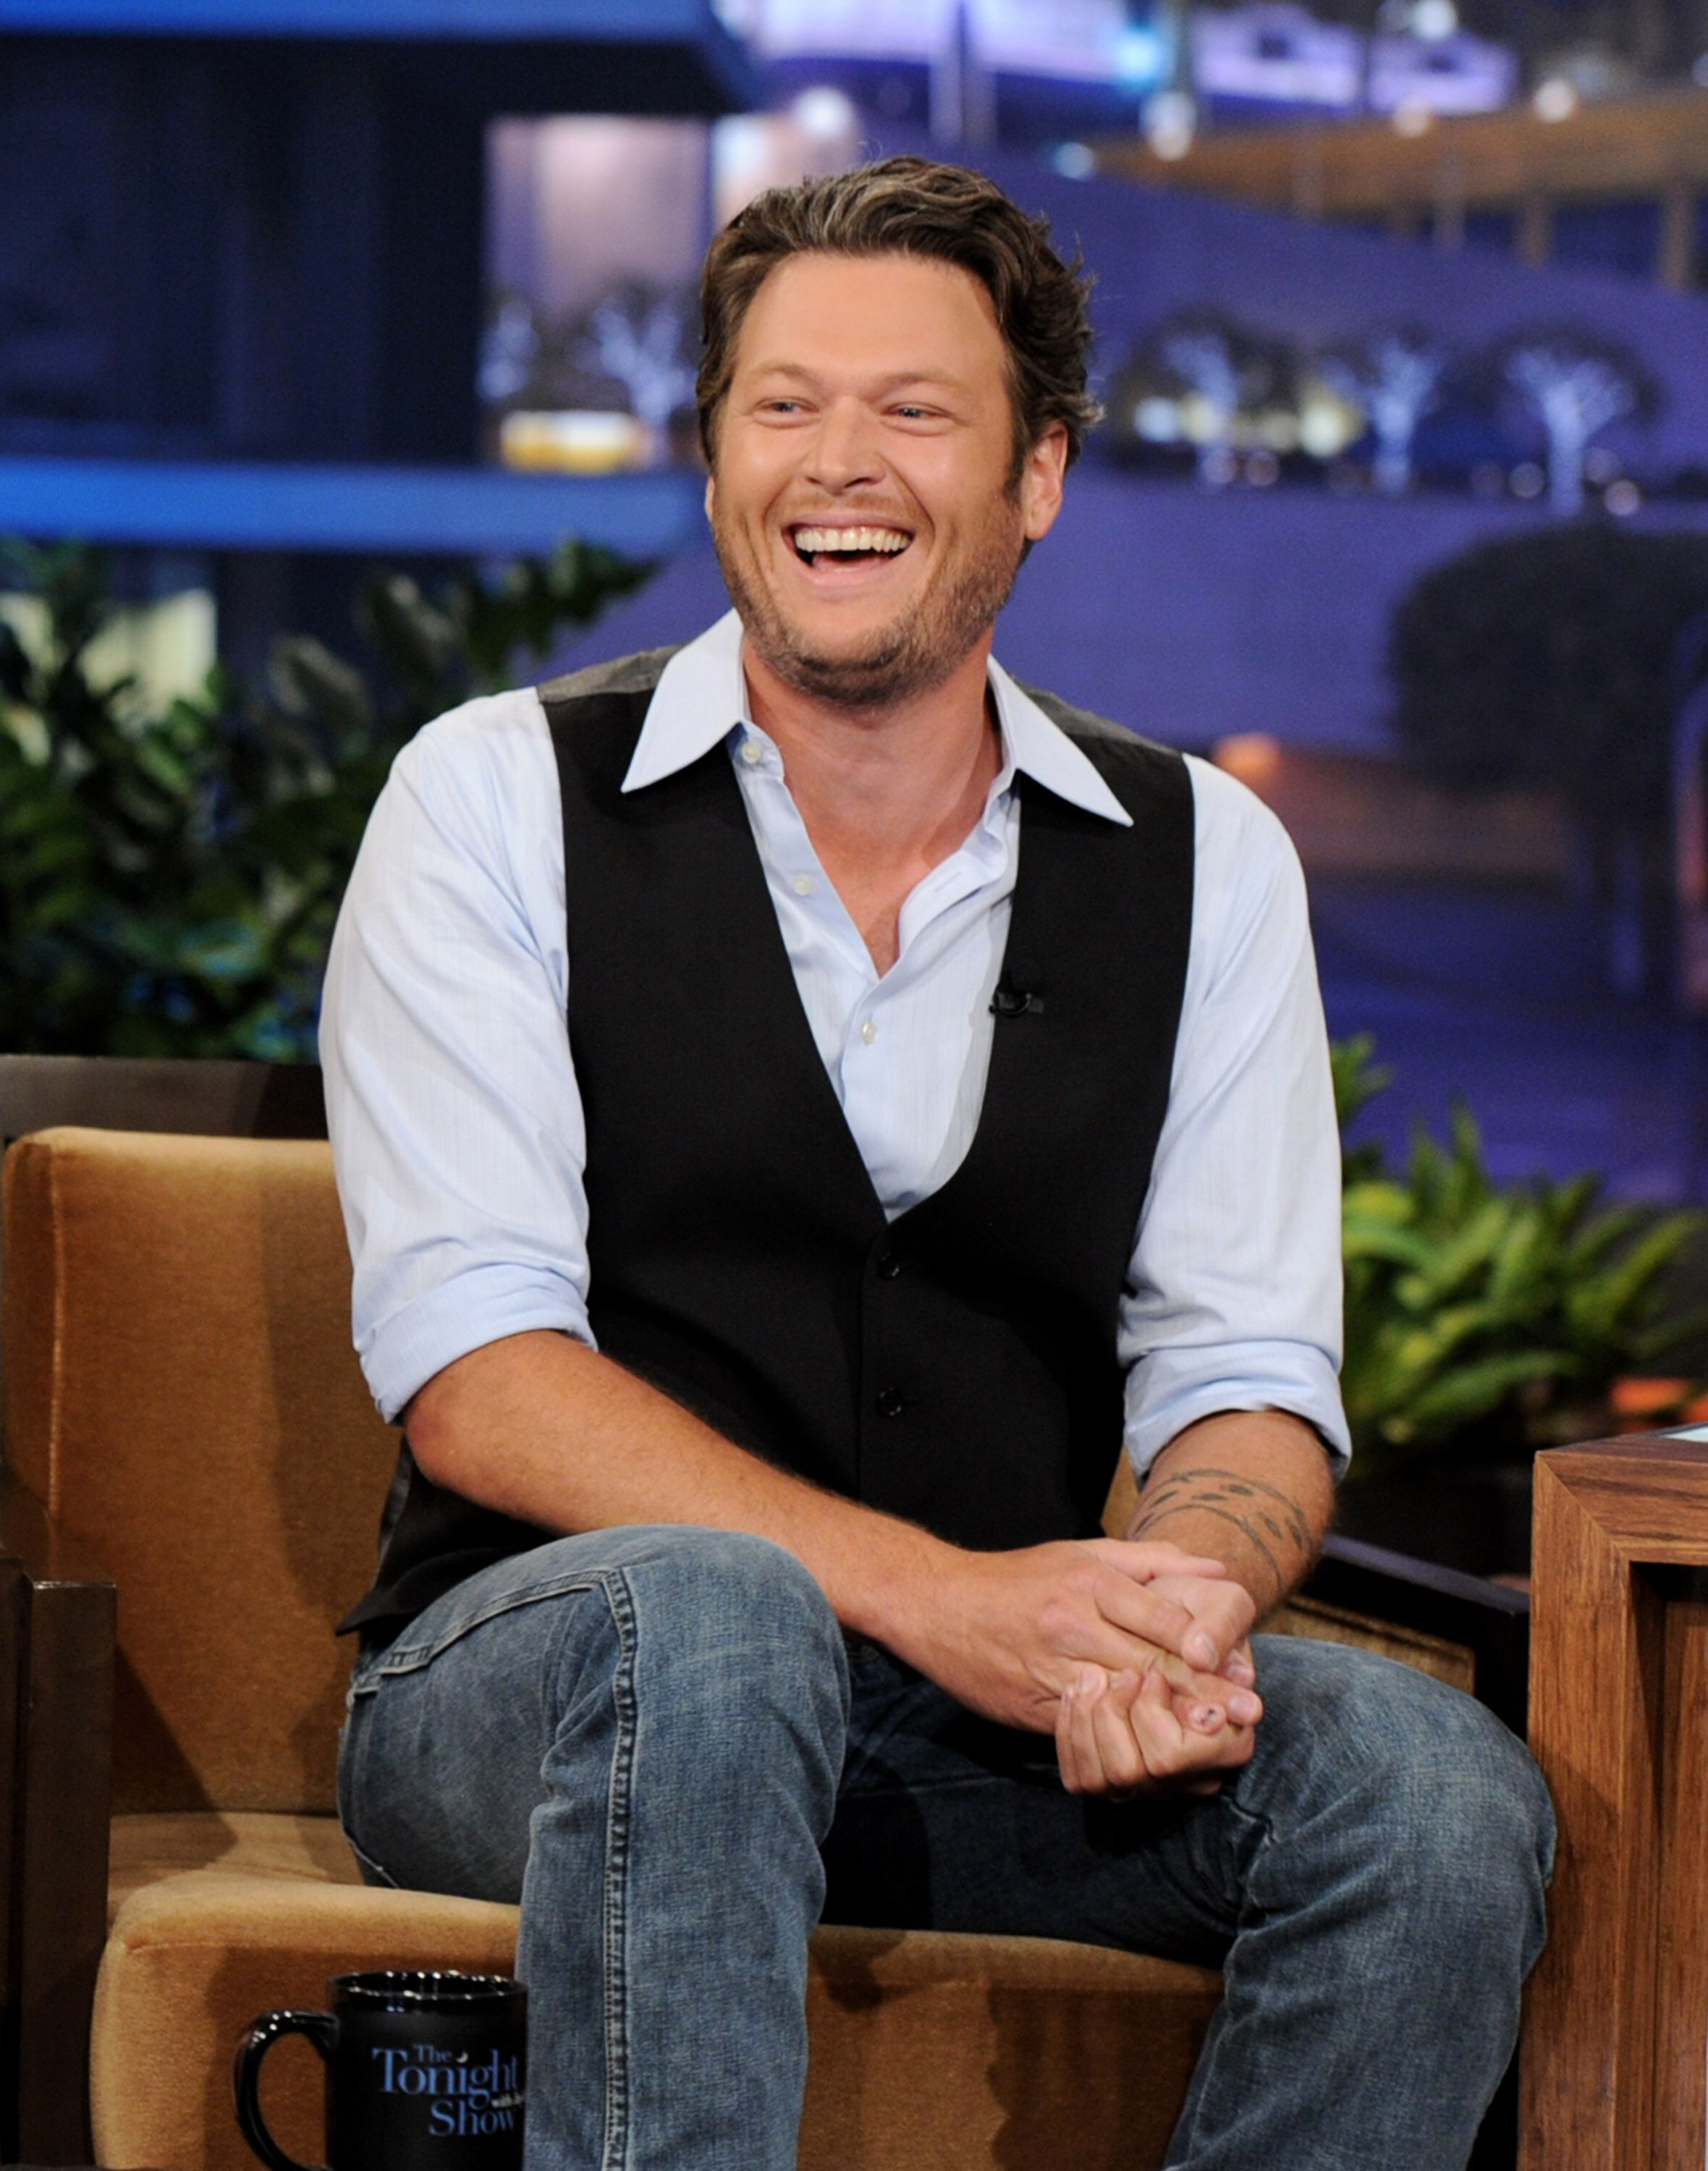 Blake Shelton appears on the Tonight Show with Jay Leno  | Getty Images / Global Images Ukraine